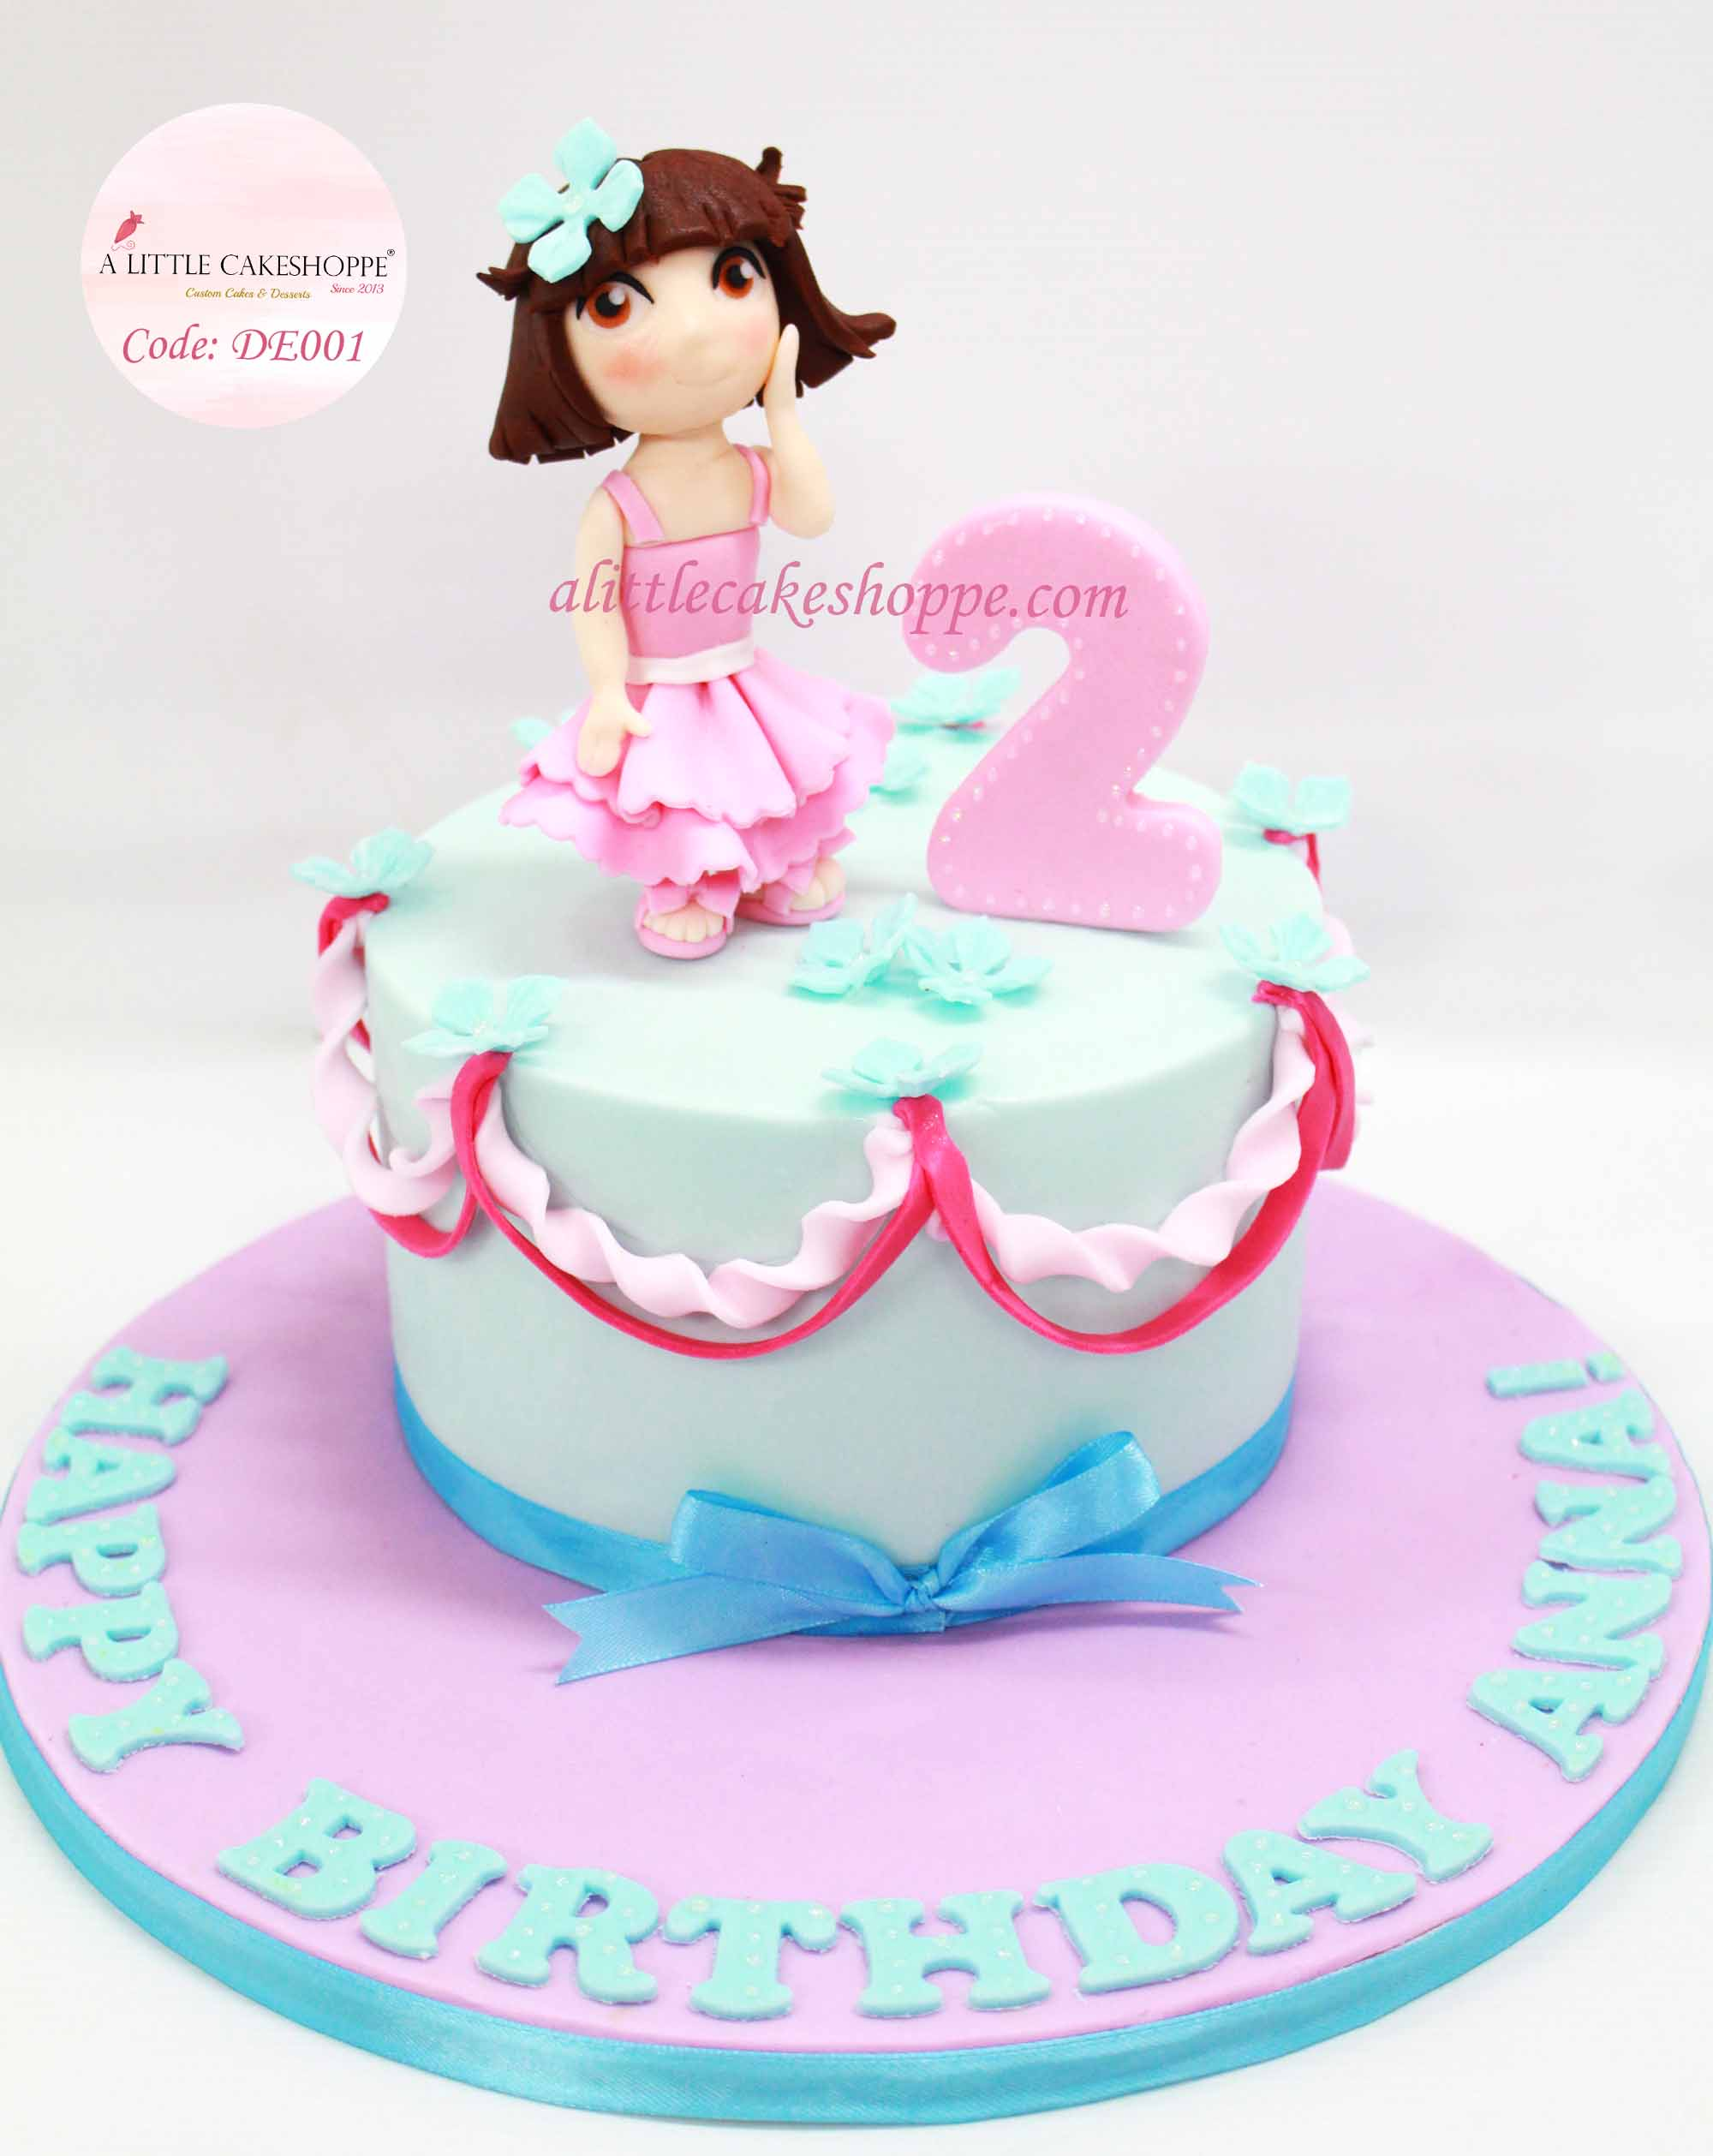 Best Customised Cake Shop Singapore custom cake 2D 3D birthday cake cupcakes desserts wedding corporate events anniversary 1st birthday 21st birthday fondant fresh cream buttercream cakes alittlecakeshoppe a little cake shoppe compliments review singapore bakers SG cake shop cakeshop ah beng who bakes dora the explorer